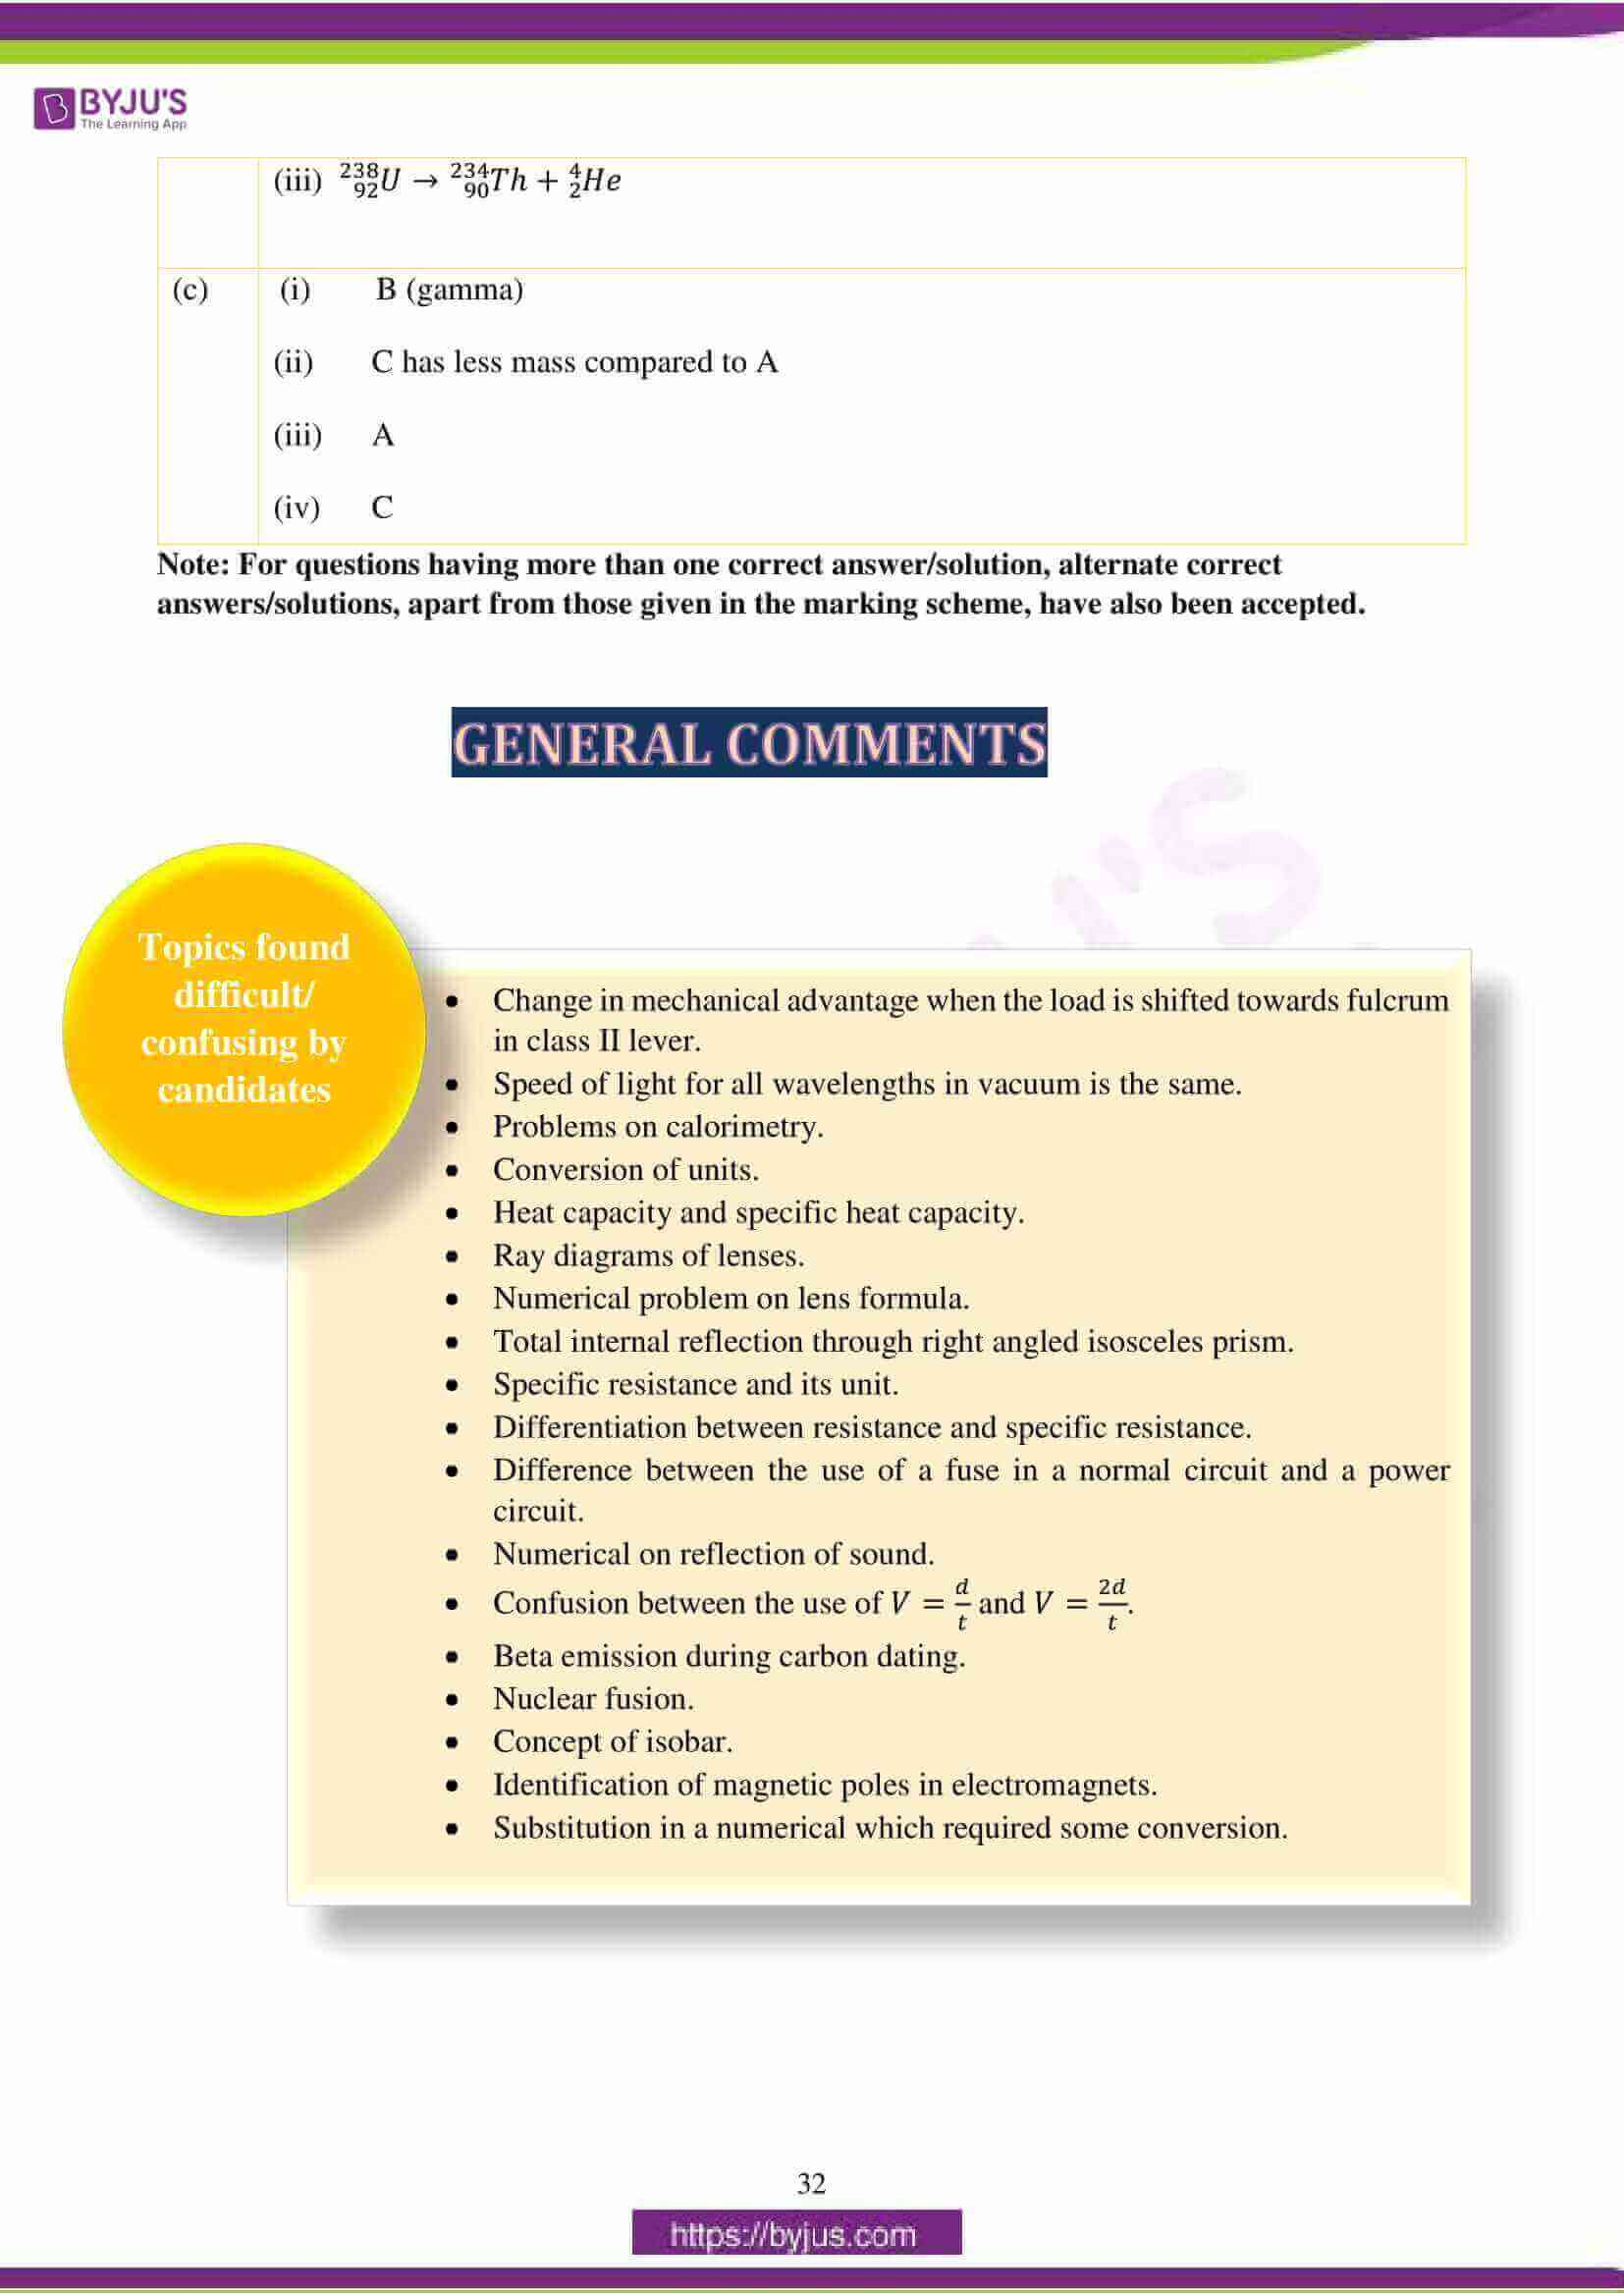 icse class 10 physics question paper solution 2018 23